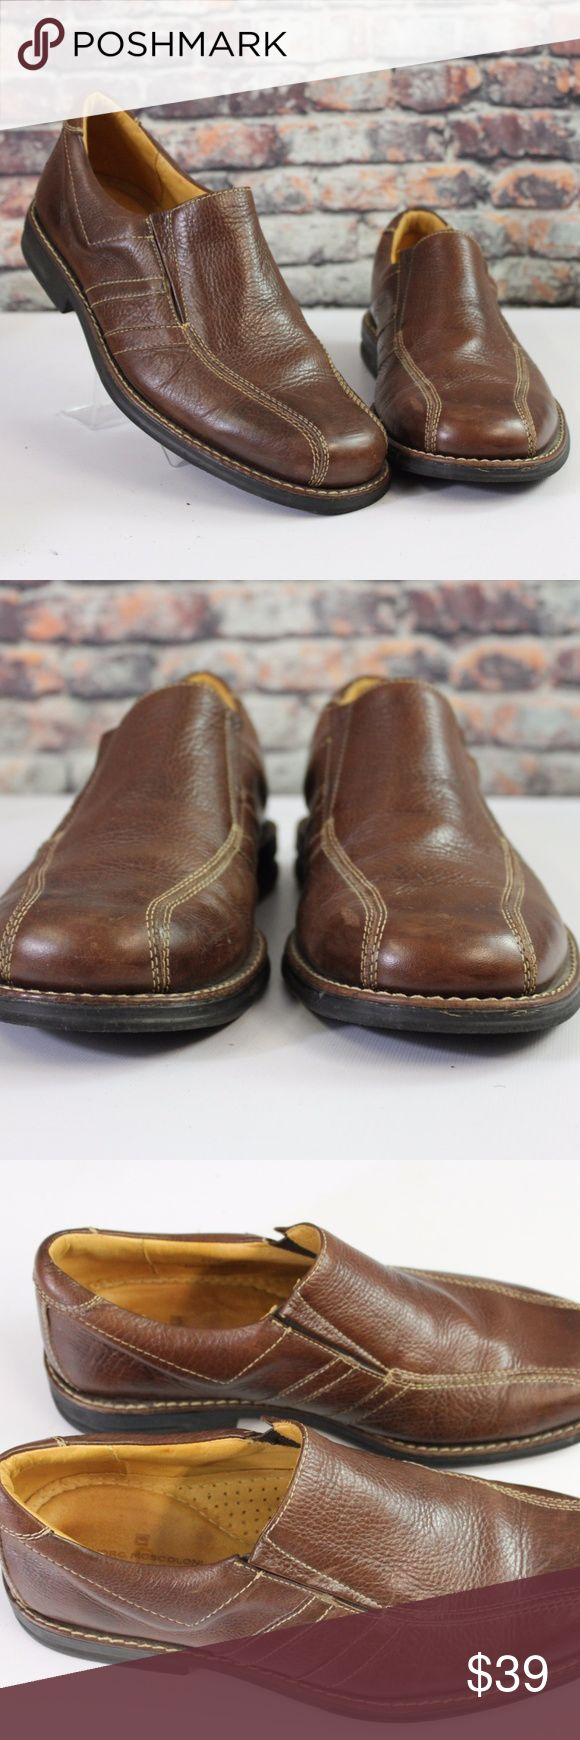 Sandro Moscoloni Bike Toe Leather Loafers 9.5 D Sandro Moscoloni Bike Toe Leather Loafers 9.5 D   Great condition - clean uppers, good soles  Thanks for looking! BA7L1 Sandro Moscoloni Shoes Loafers & Slip-Ons